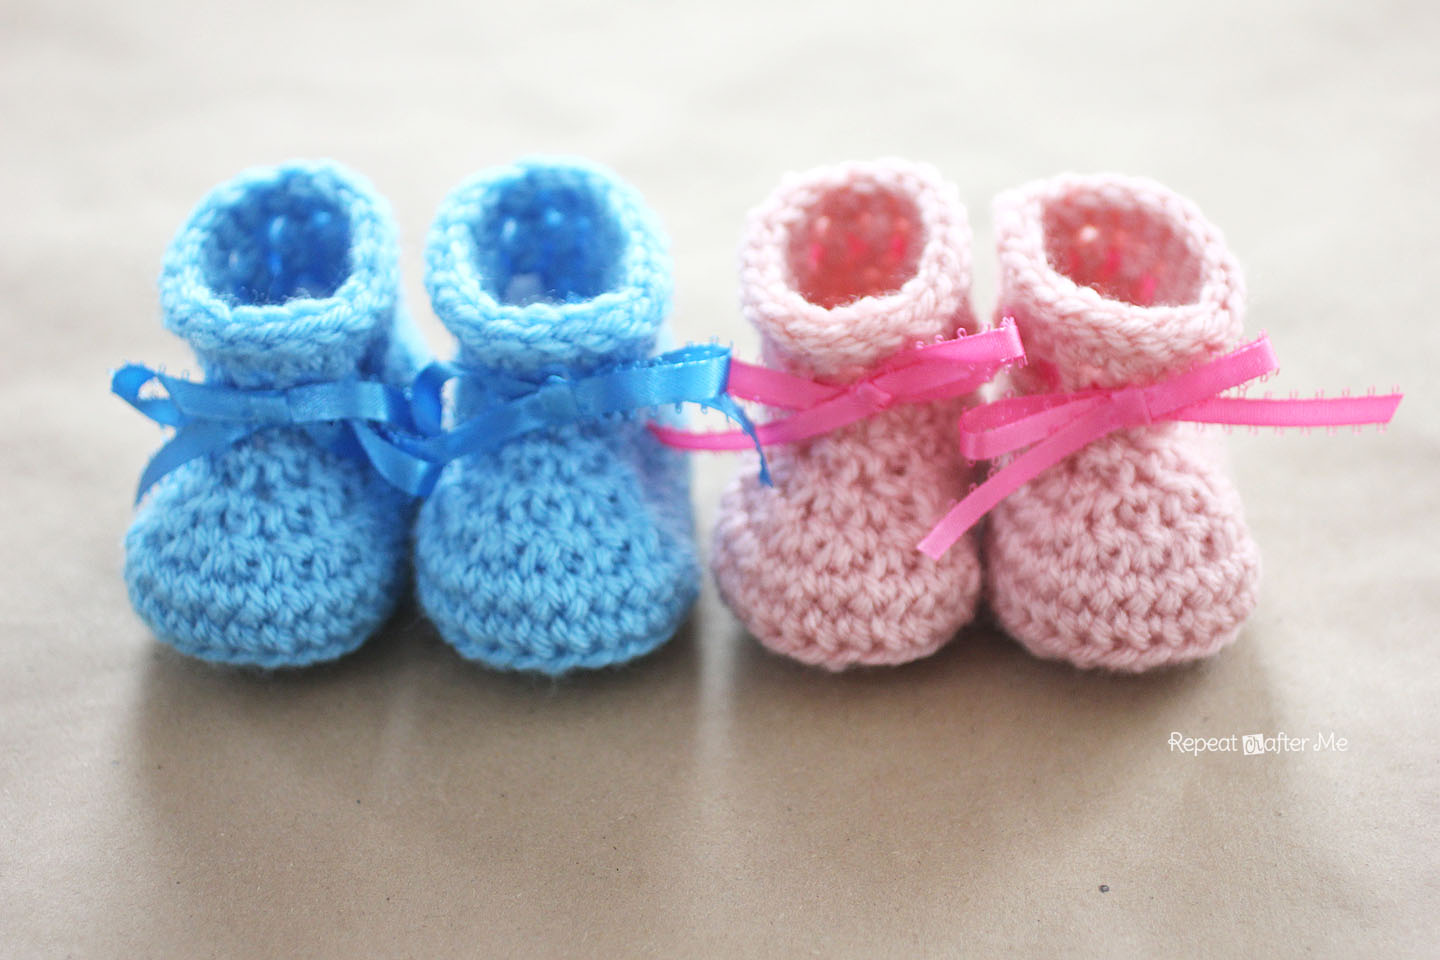 Free Crochet Pattern Of Baby Booties : Crochet Newborn Baby Booties Pattern - Repeat Crafter Me